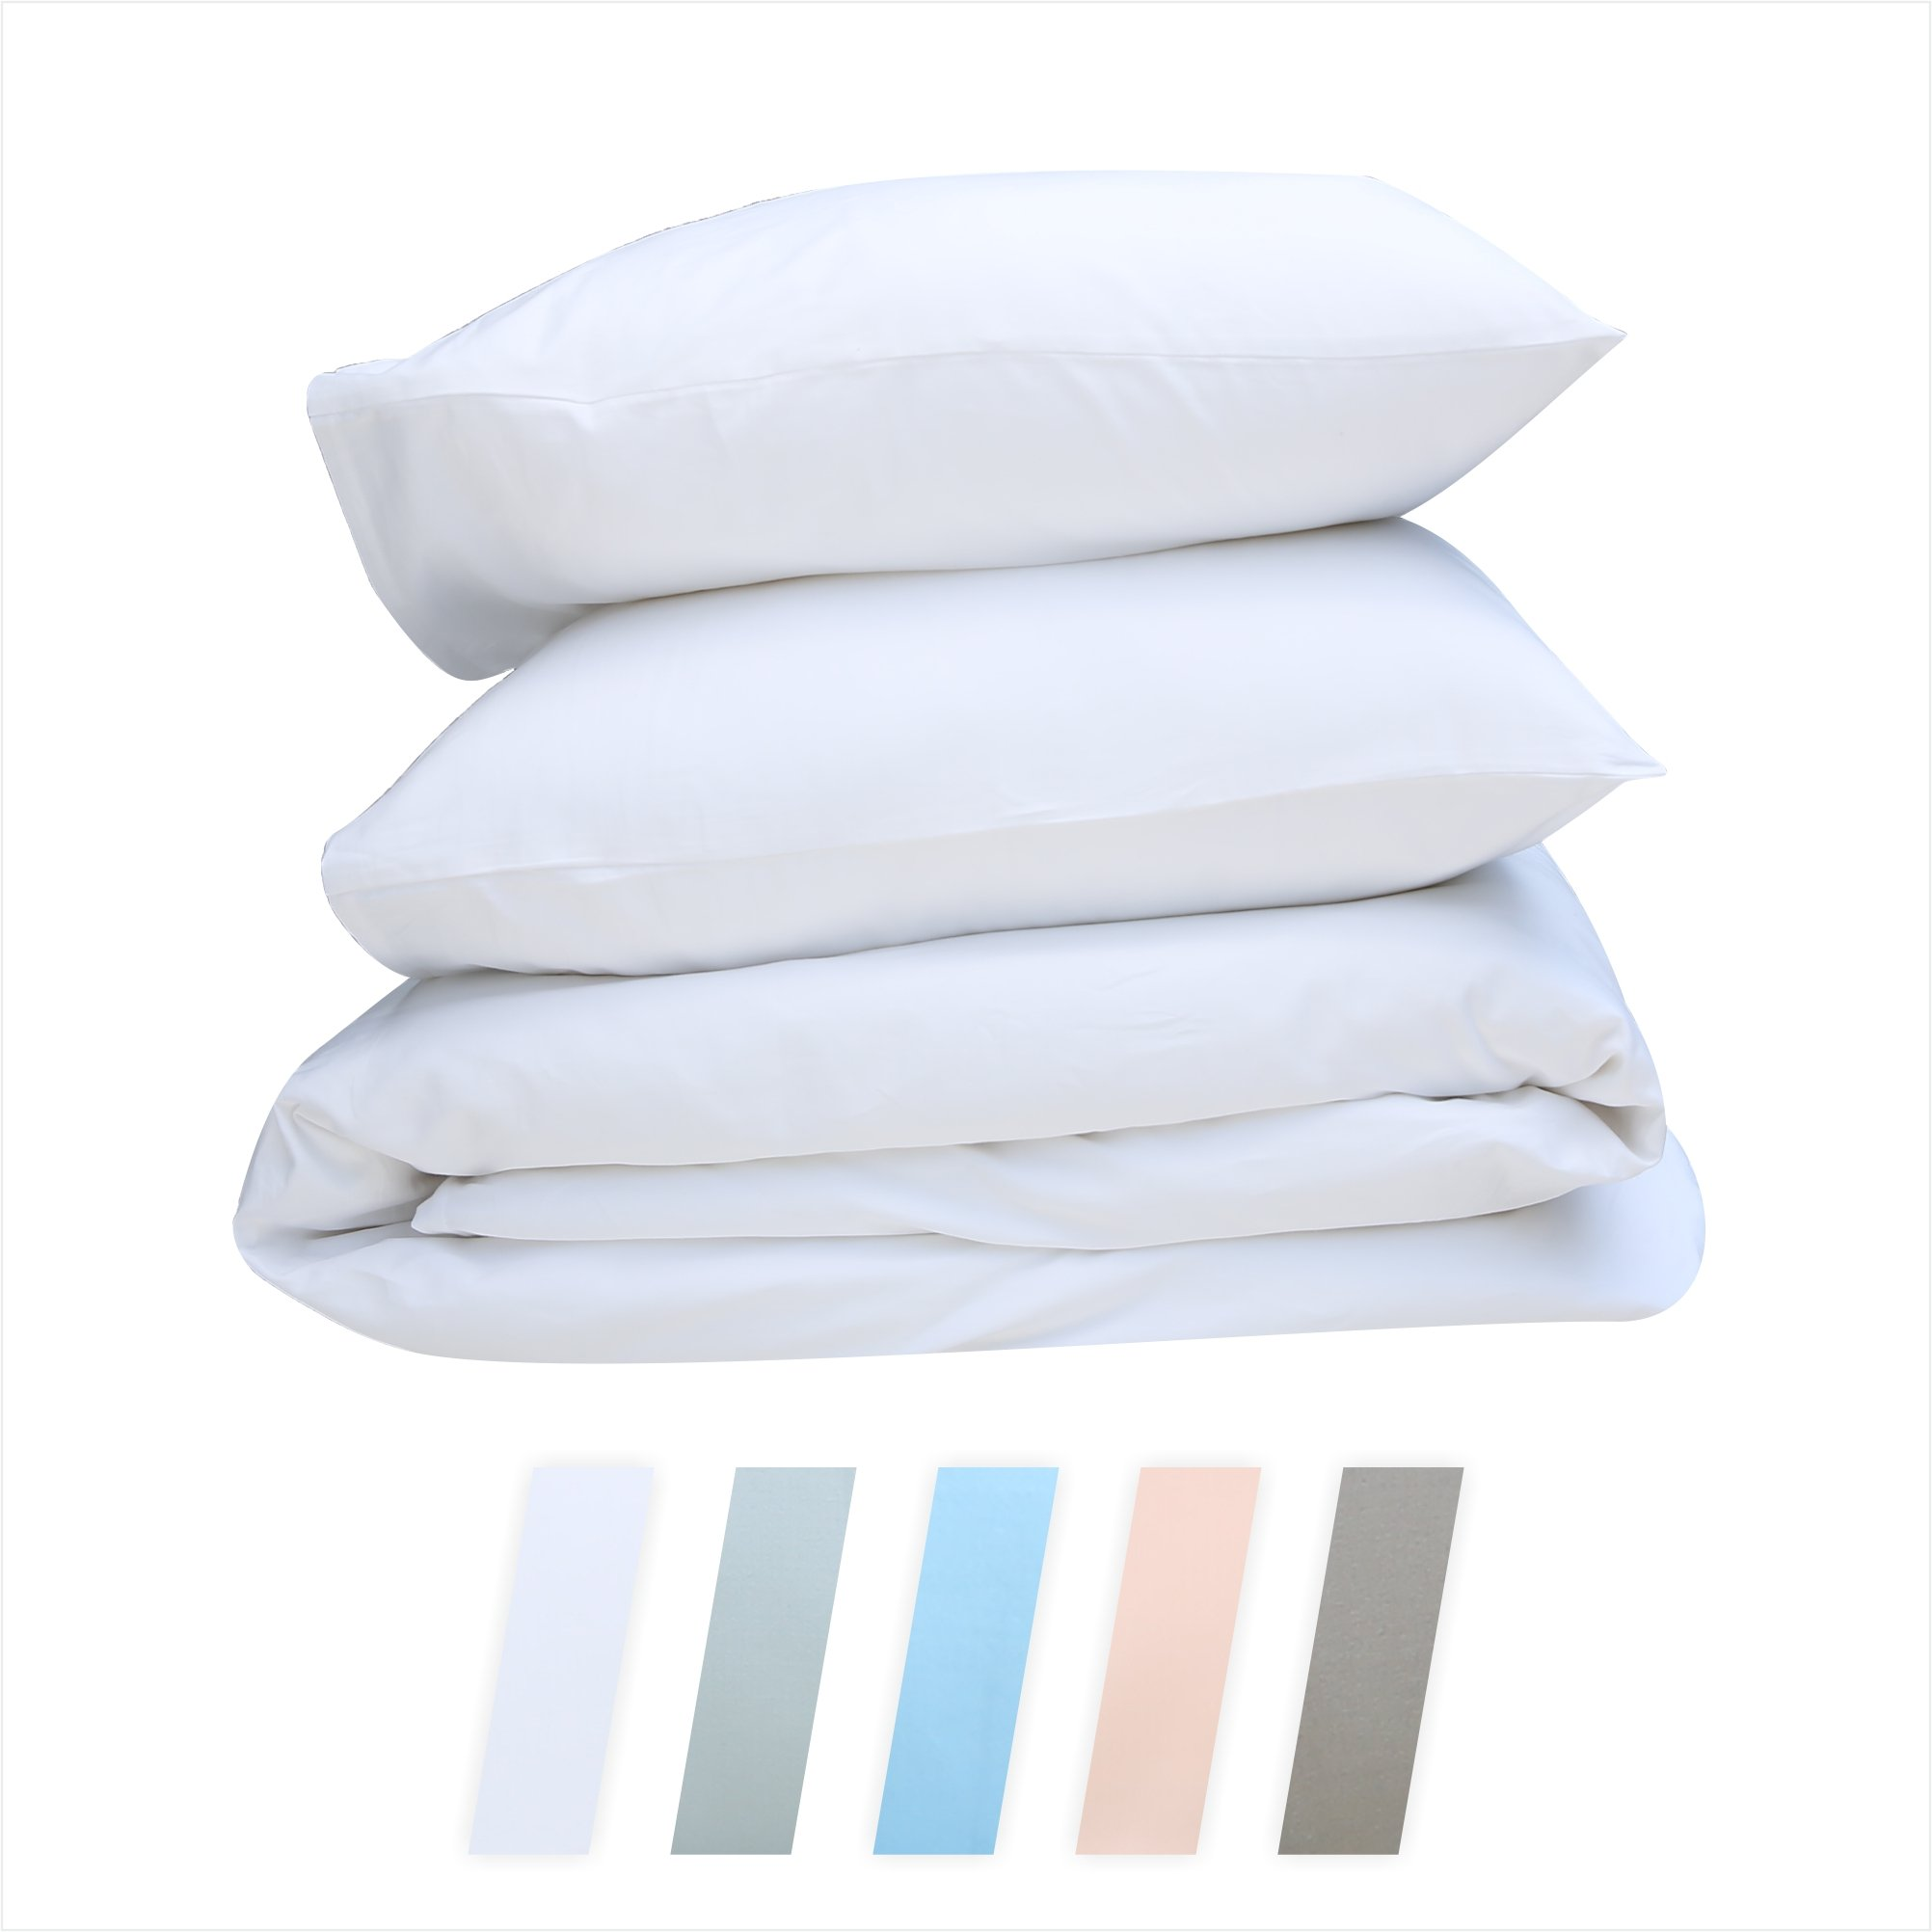 Best Hotel Luxury Bedding 3-Piece King Pure White Duvet Cover Set, 400 TC 100% Long-Staple Combed Cotton Soft, Silky & Breathable Duvet Cover Set, Perfect Cover for your Down Comforter by California Design Den (Image #1)